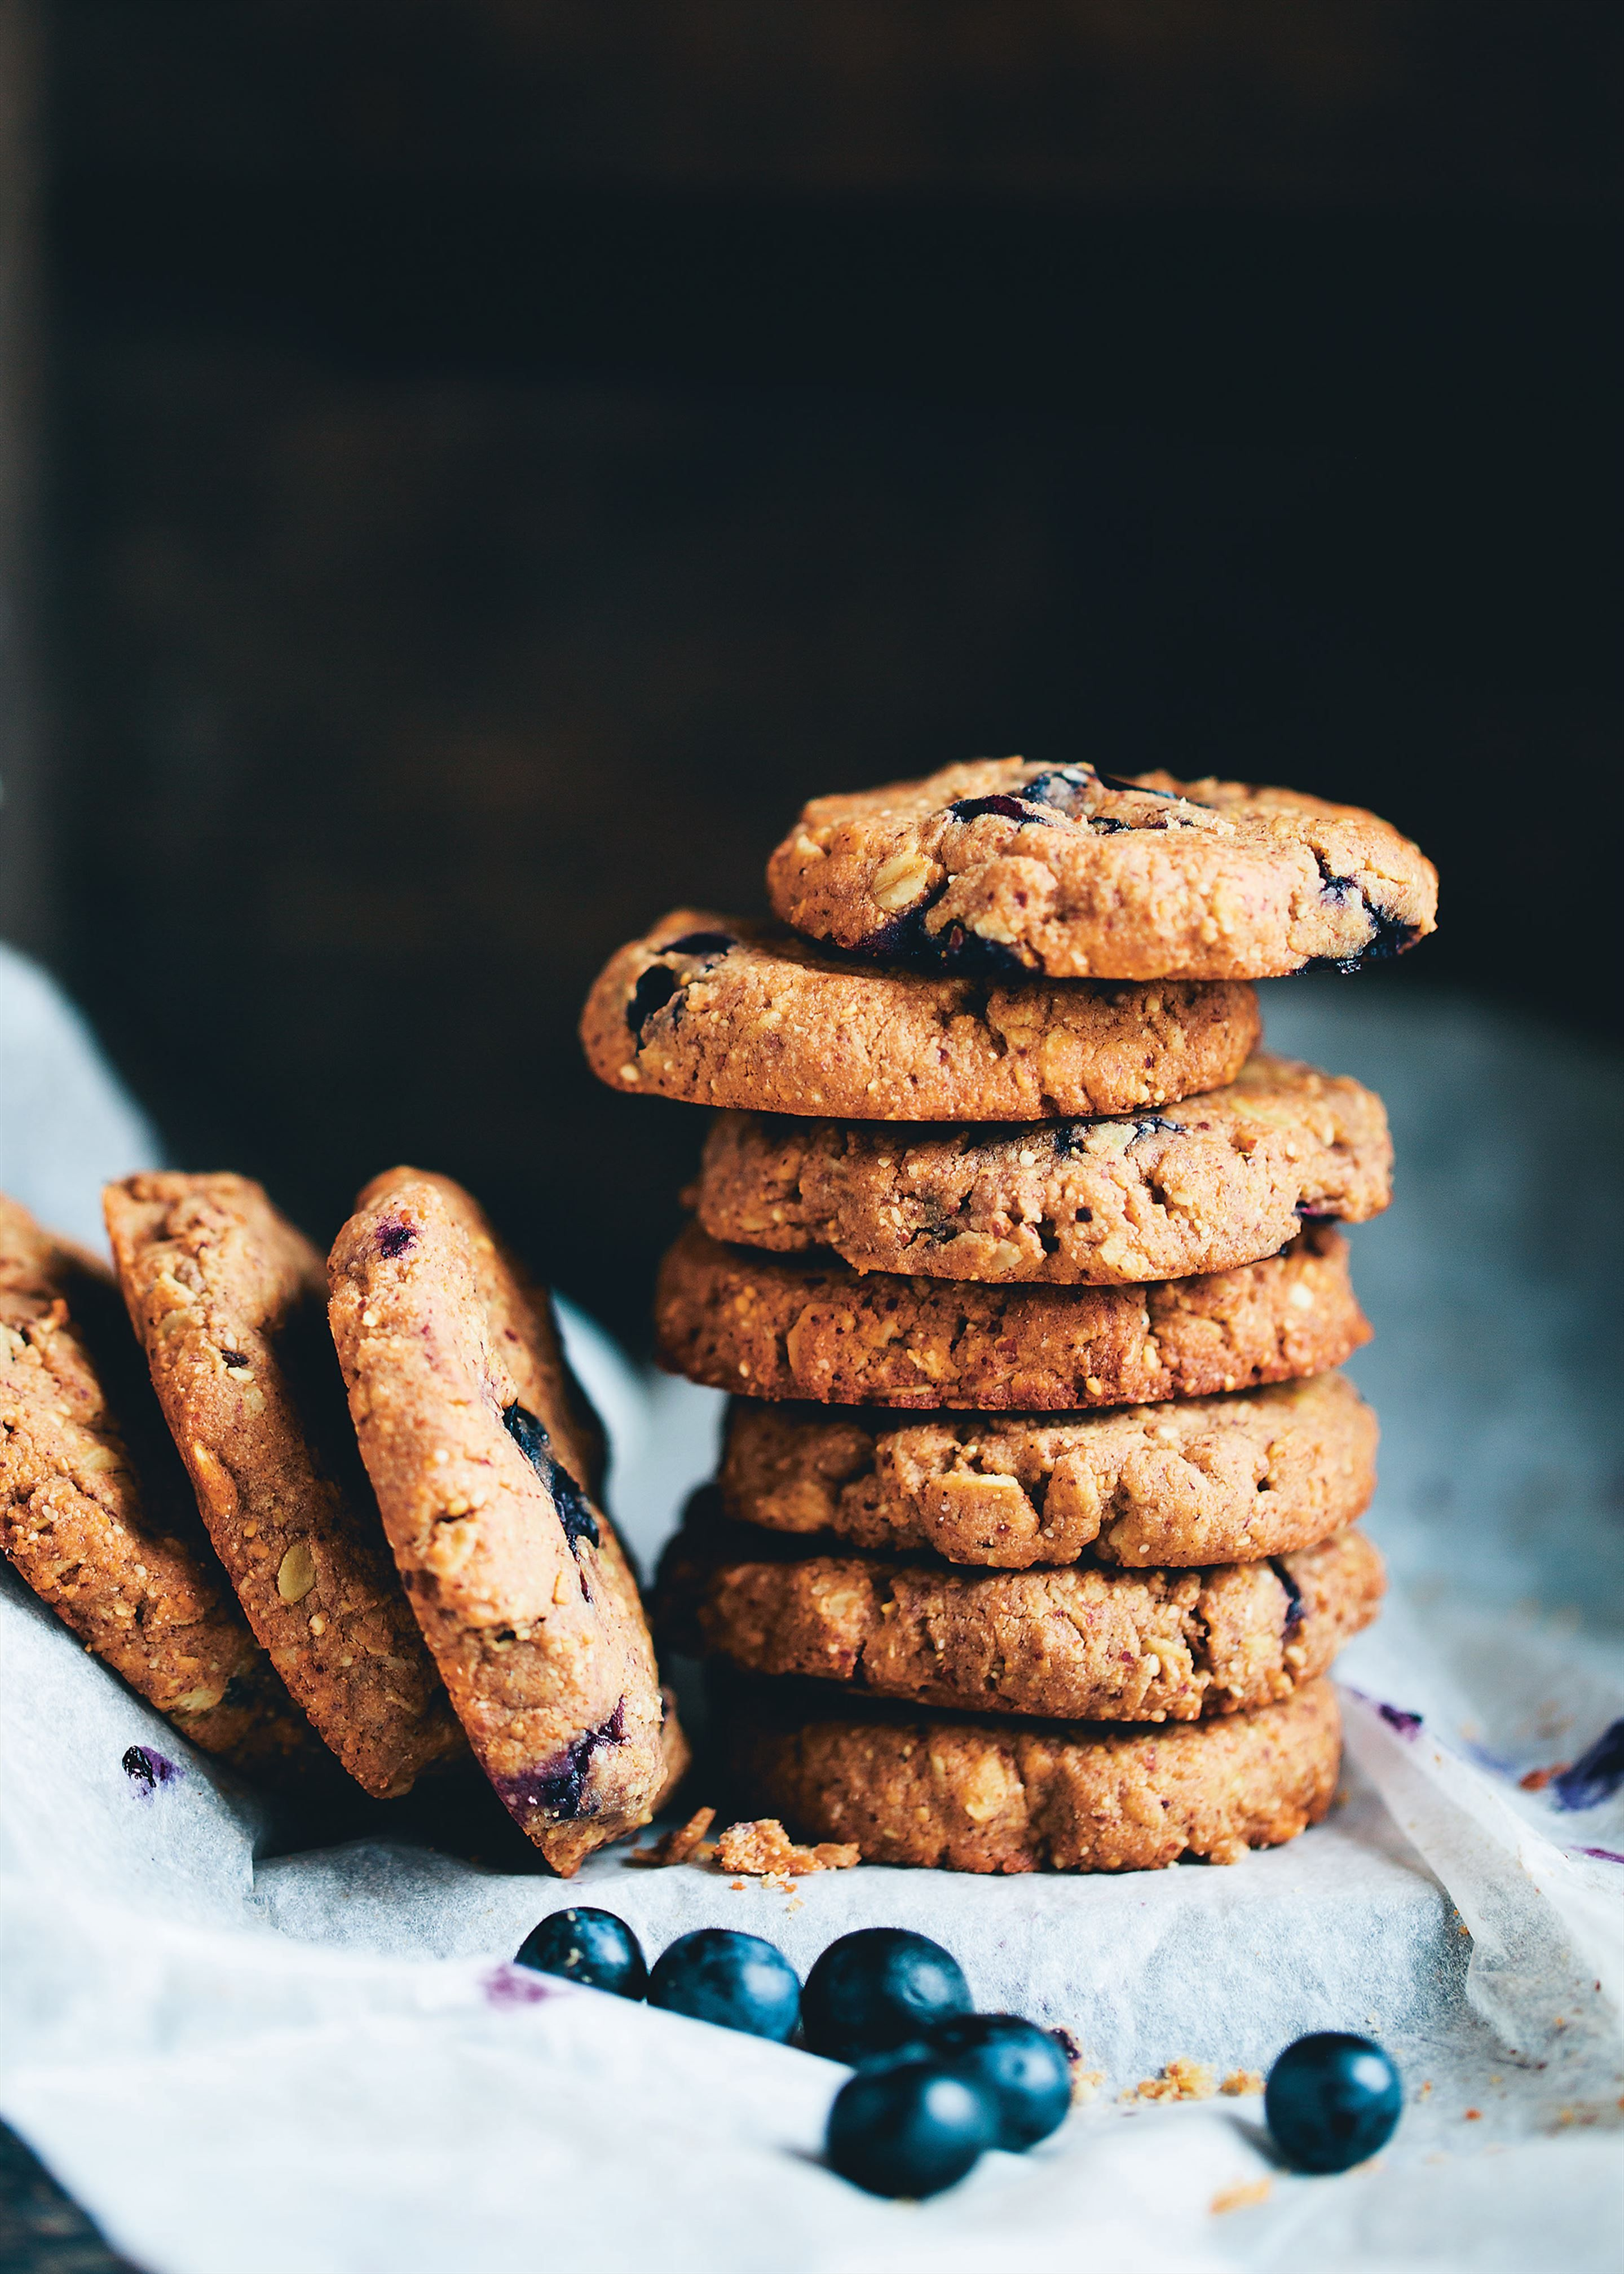 Almond butter blueberry cookies recipe from Green Kitchen Travels by David Frenkiel | Cooked